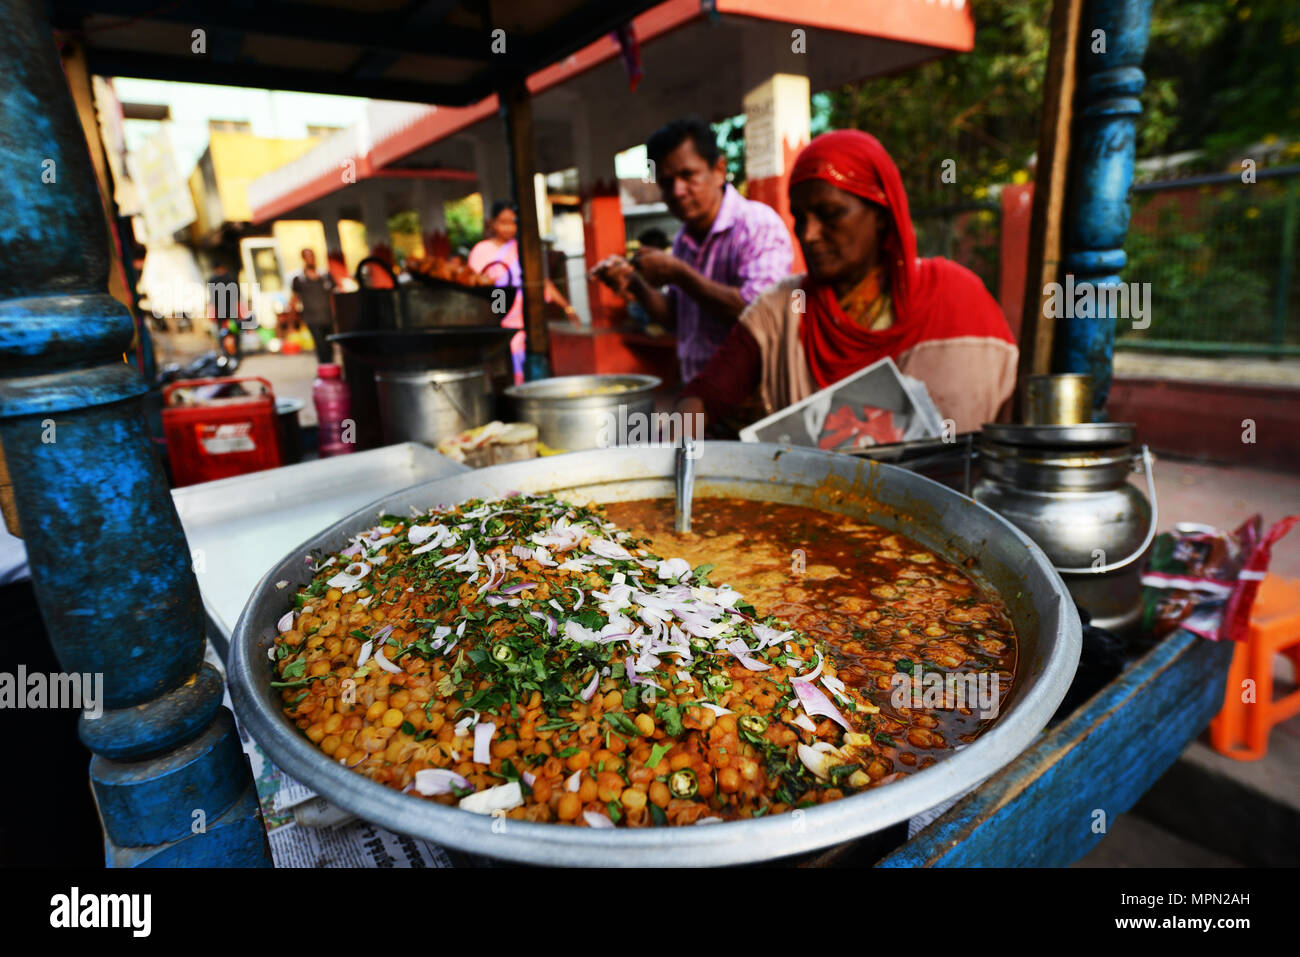 A pot of Chickpea curry at a street food stall in Chennai, India. - Stock Image